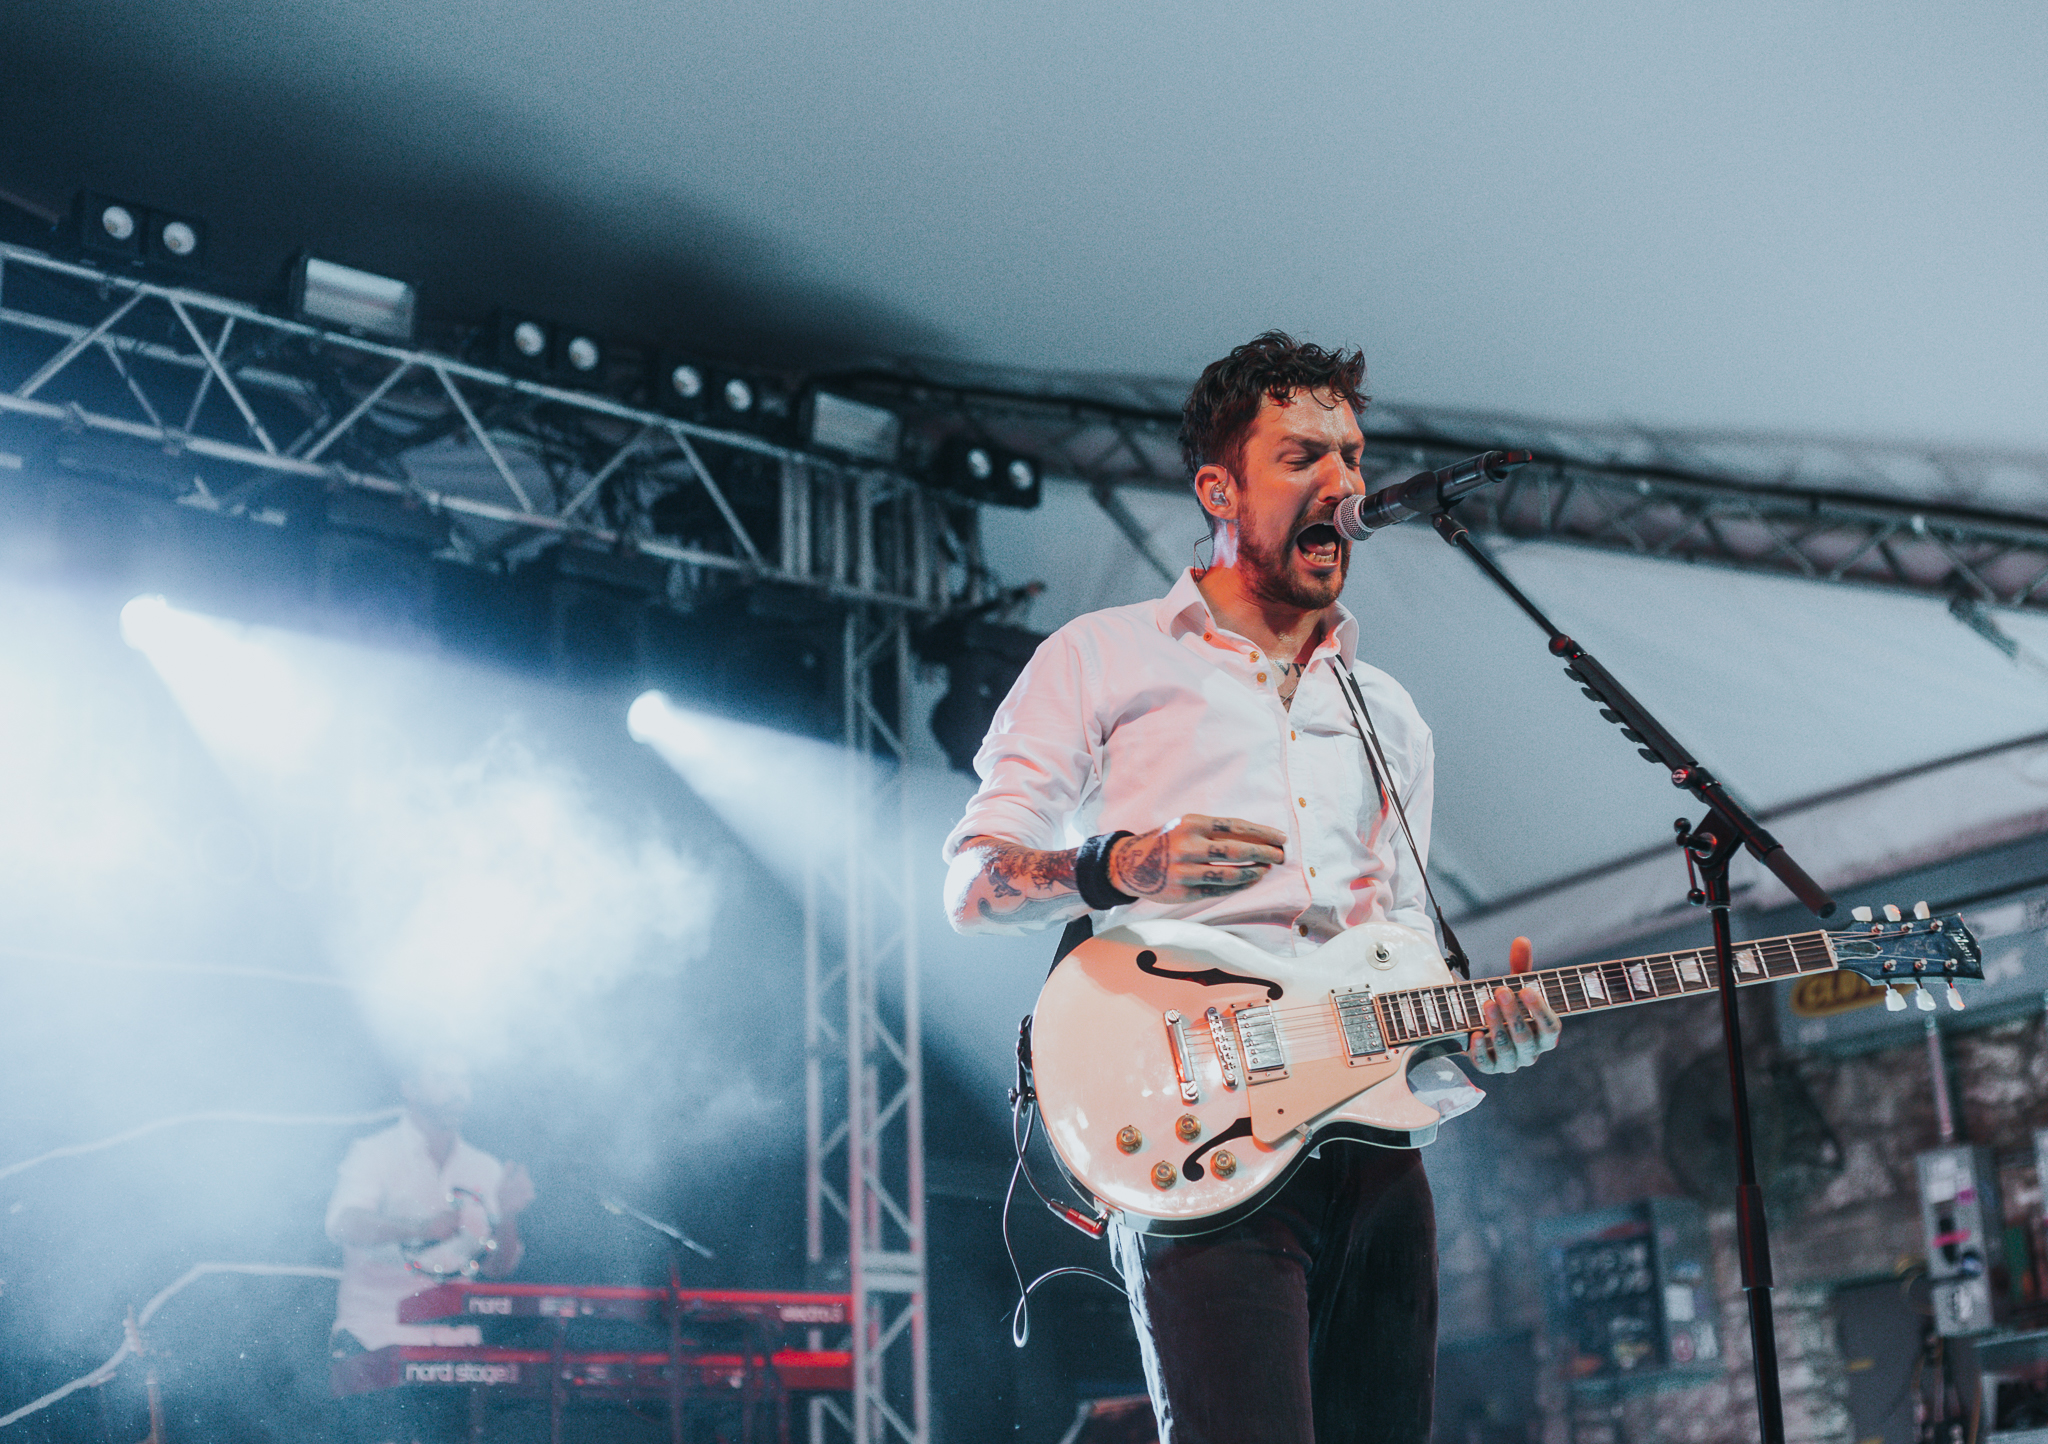 FRANK TURNER PERFORMING AT STUBB'S IN AUSTIN, TX ON JUNE 13, 2018.